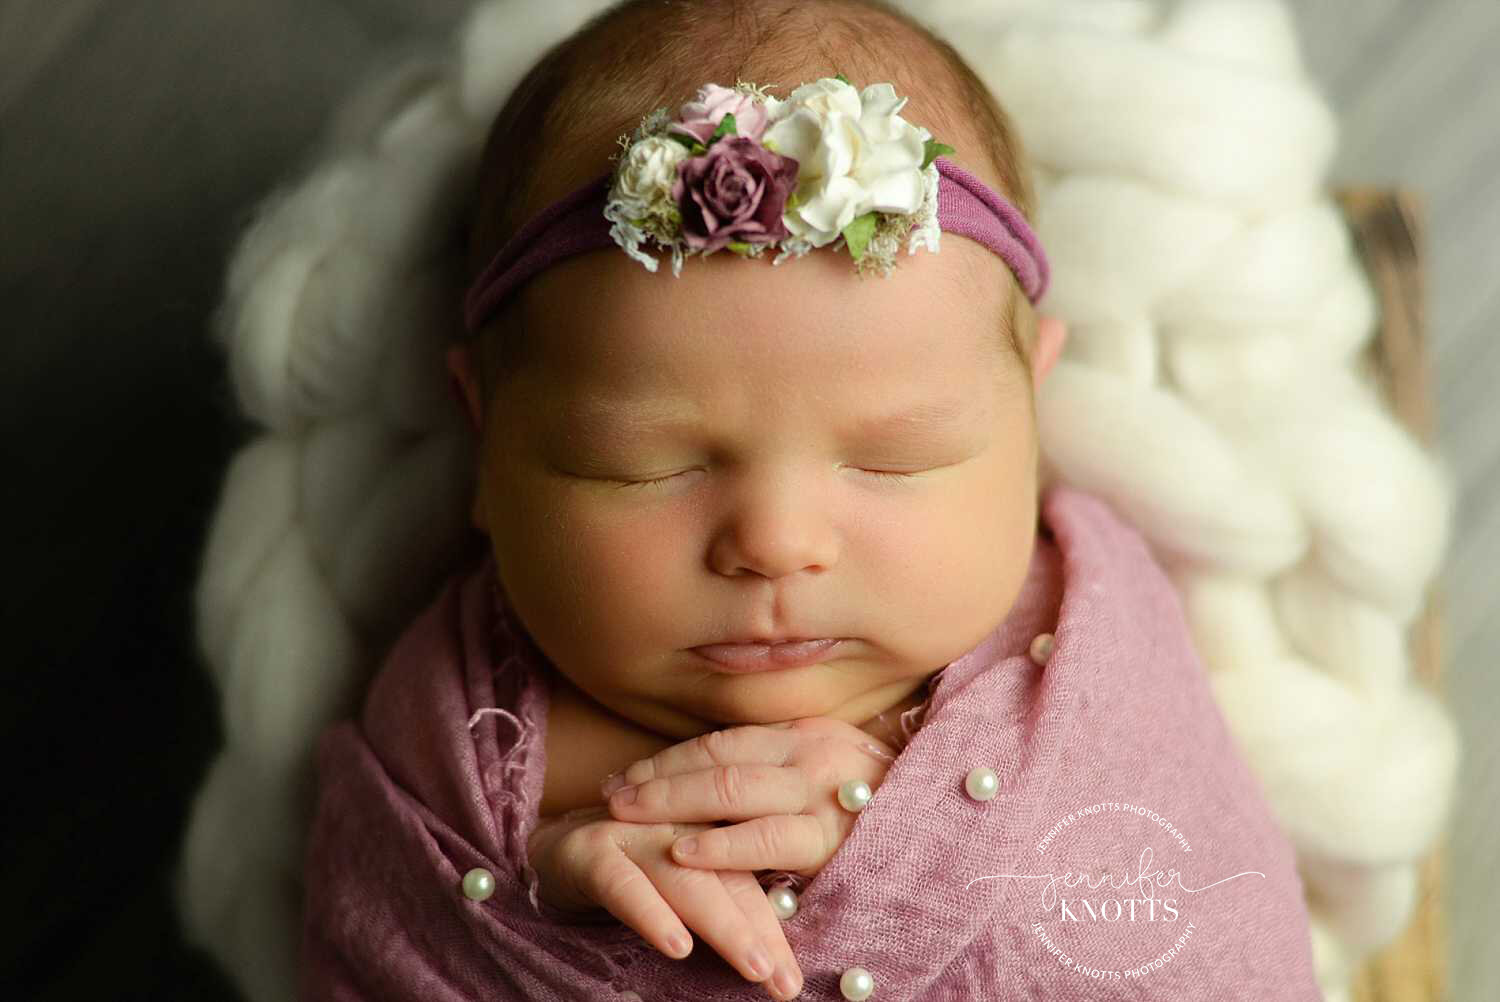 wilmington newborn photographer captures baby girl wrapped in pink